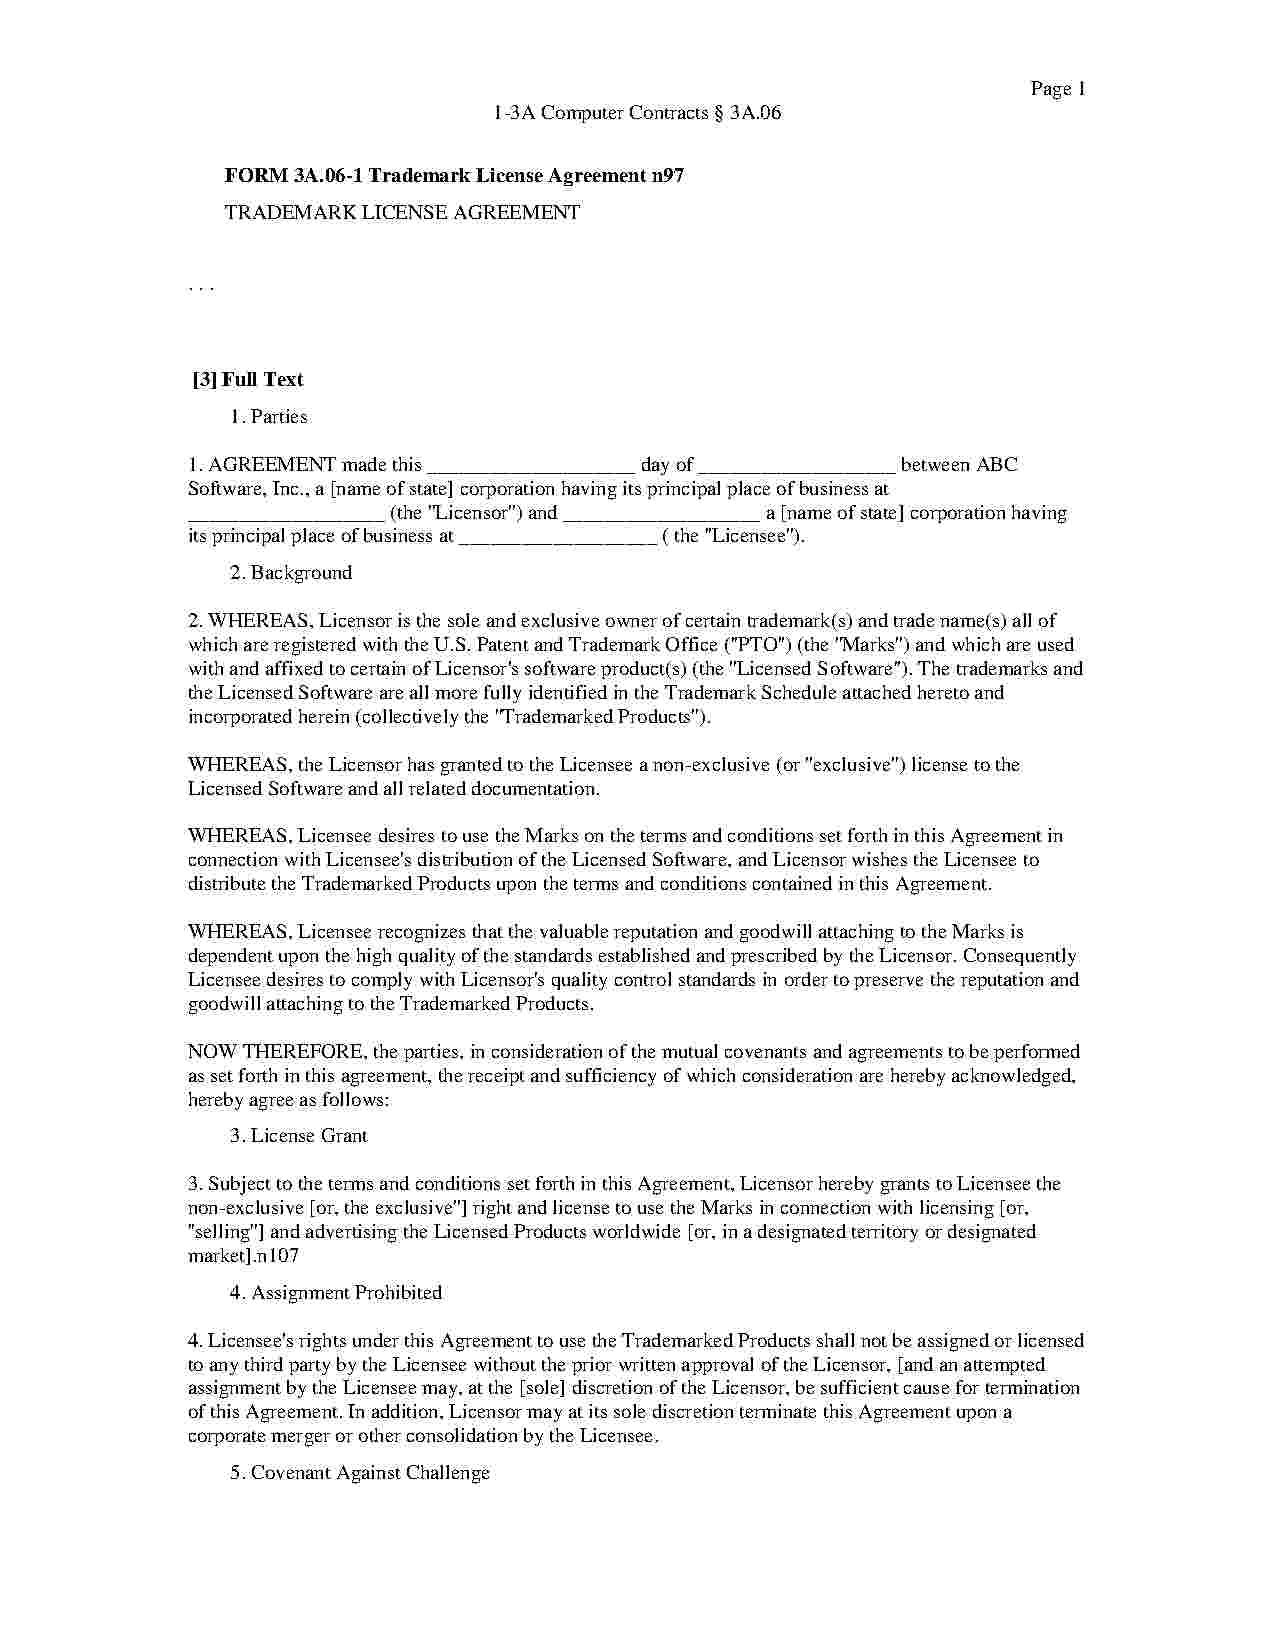 Download Licensing Agreement Style  Template For Free At Templates Inside Free Trademark License Agreement Template